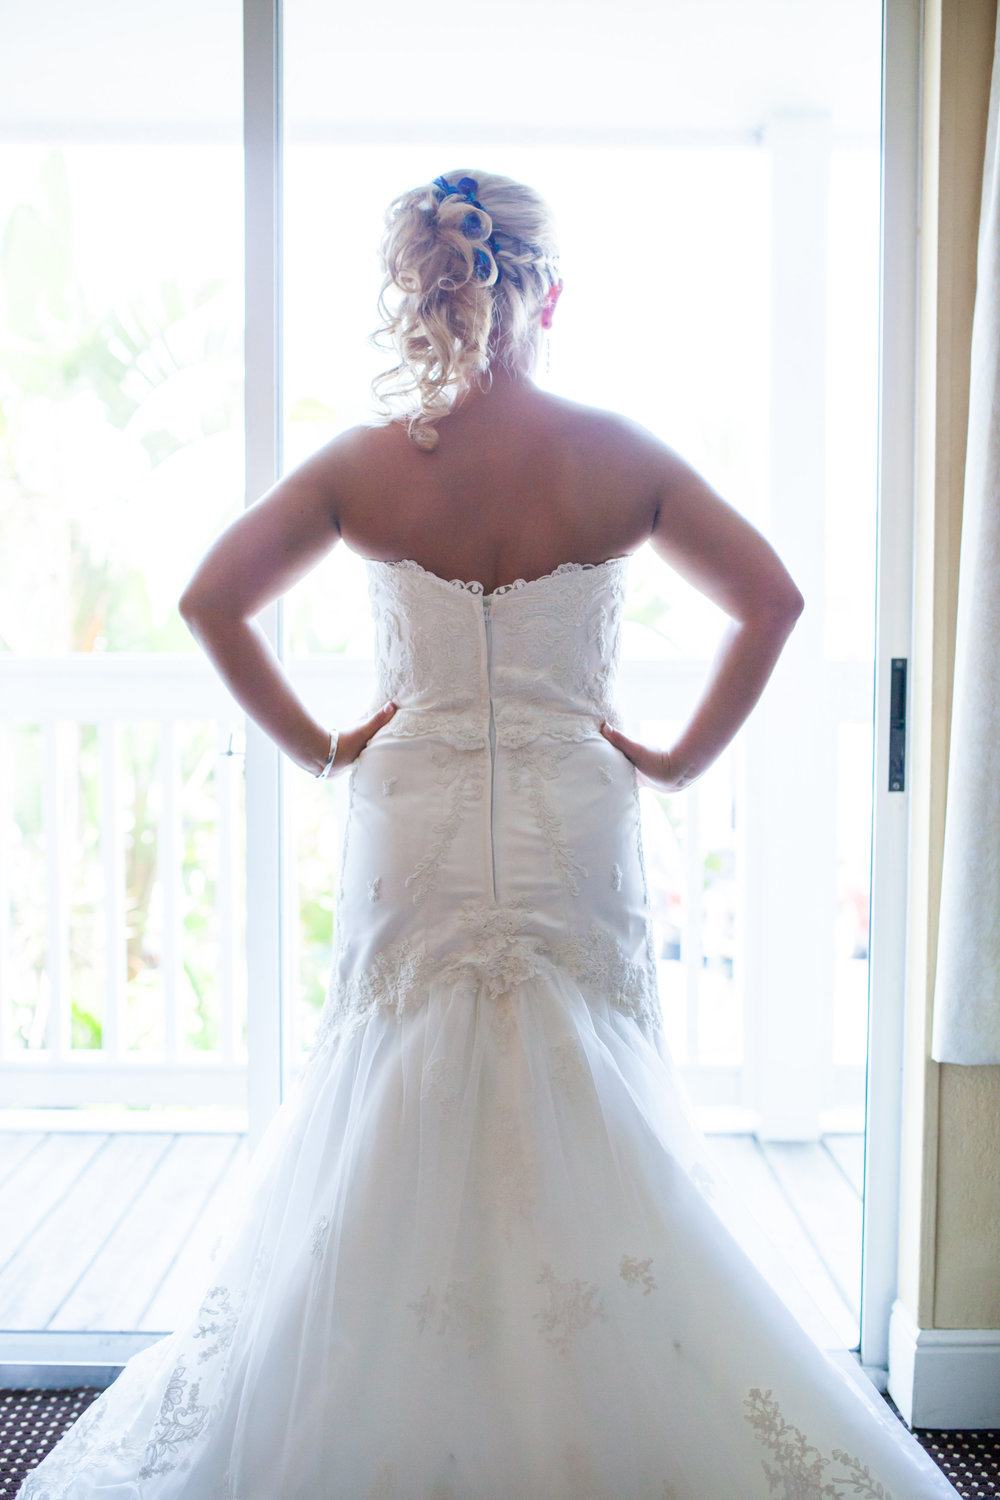 Ashley-Cory-Wedding-Key-West-1-Getting-Ready-First-Look-0078.jpg